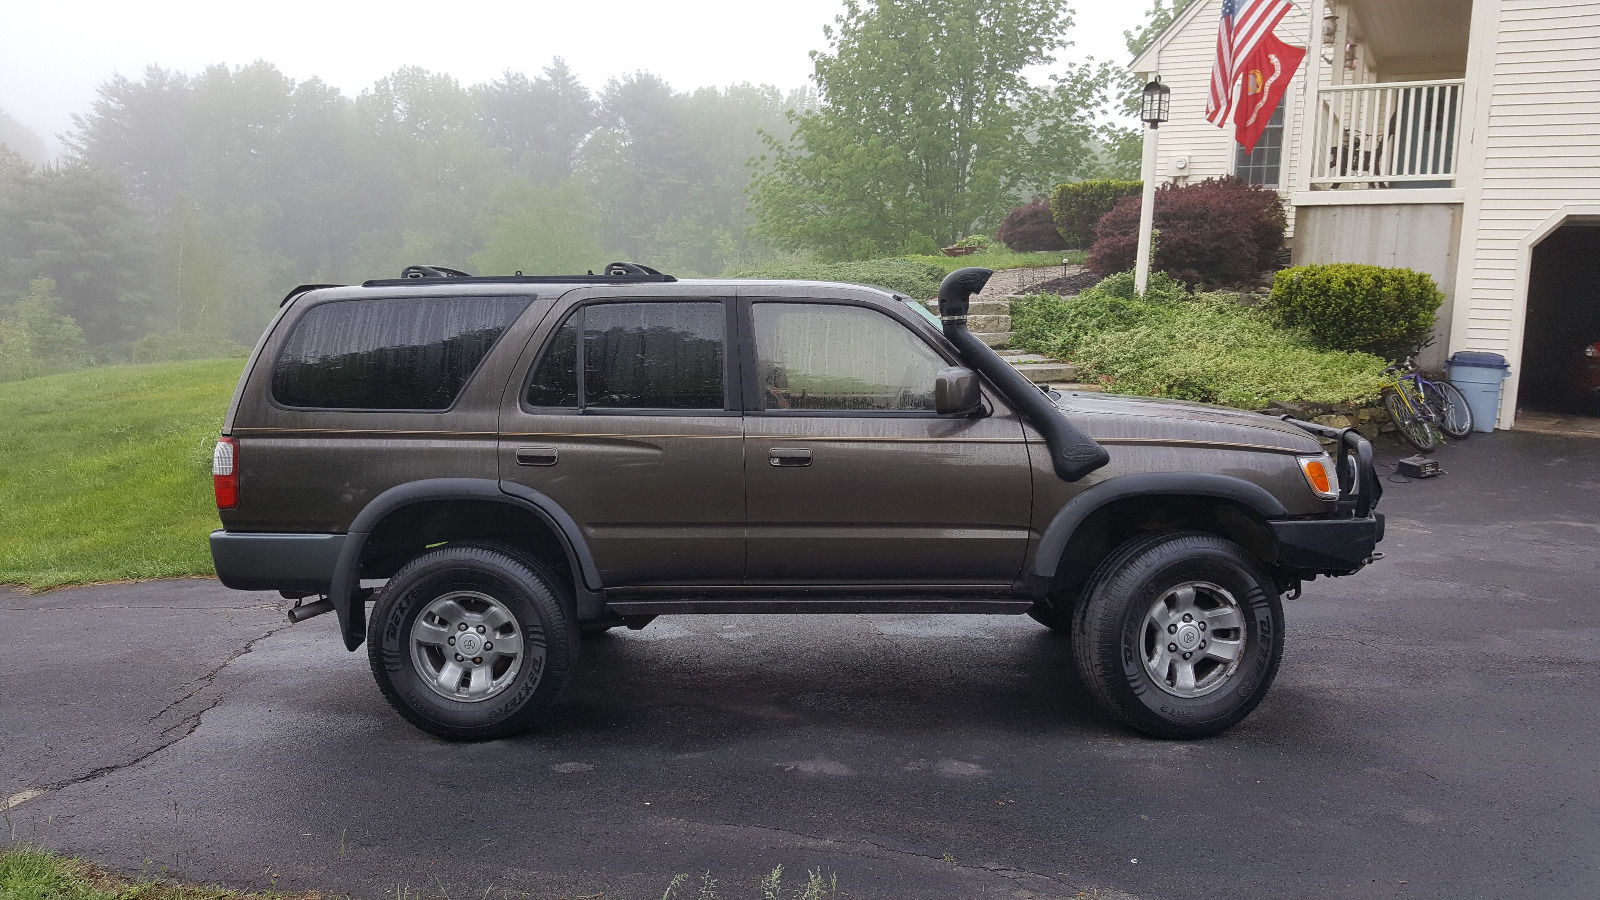 Just picked up lifted 1997 4Runner-Desert vehicle for 12+ years was